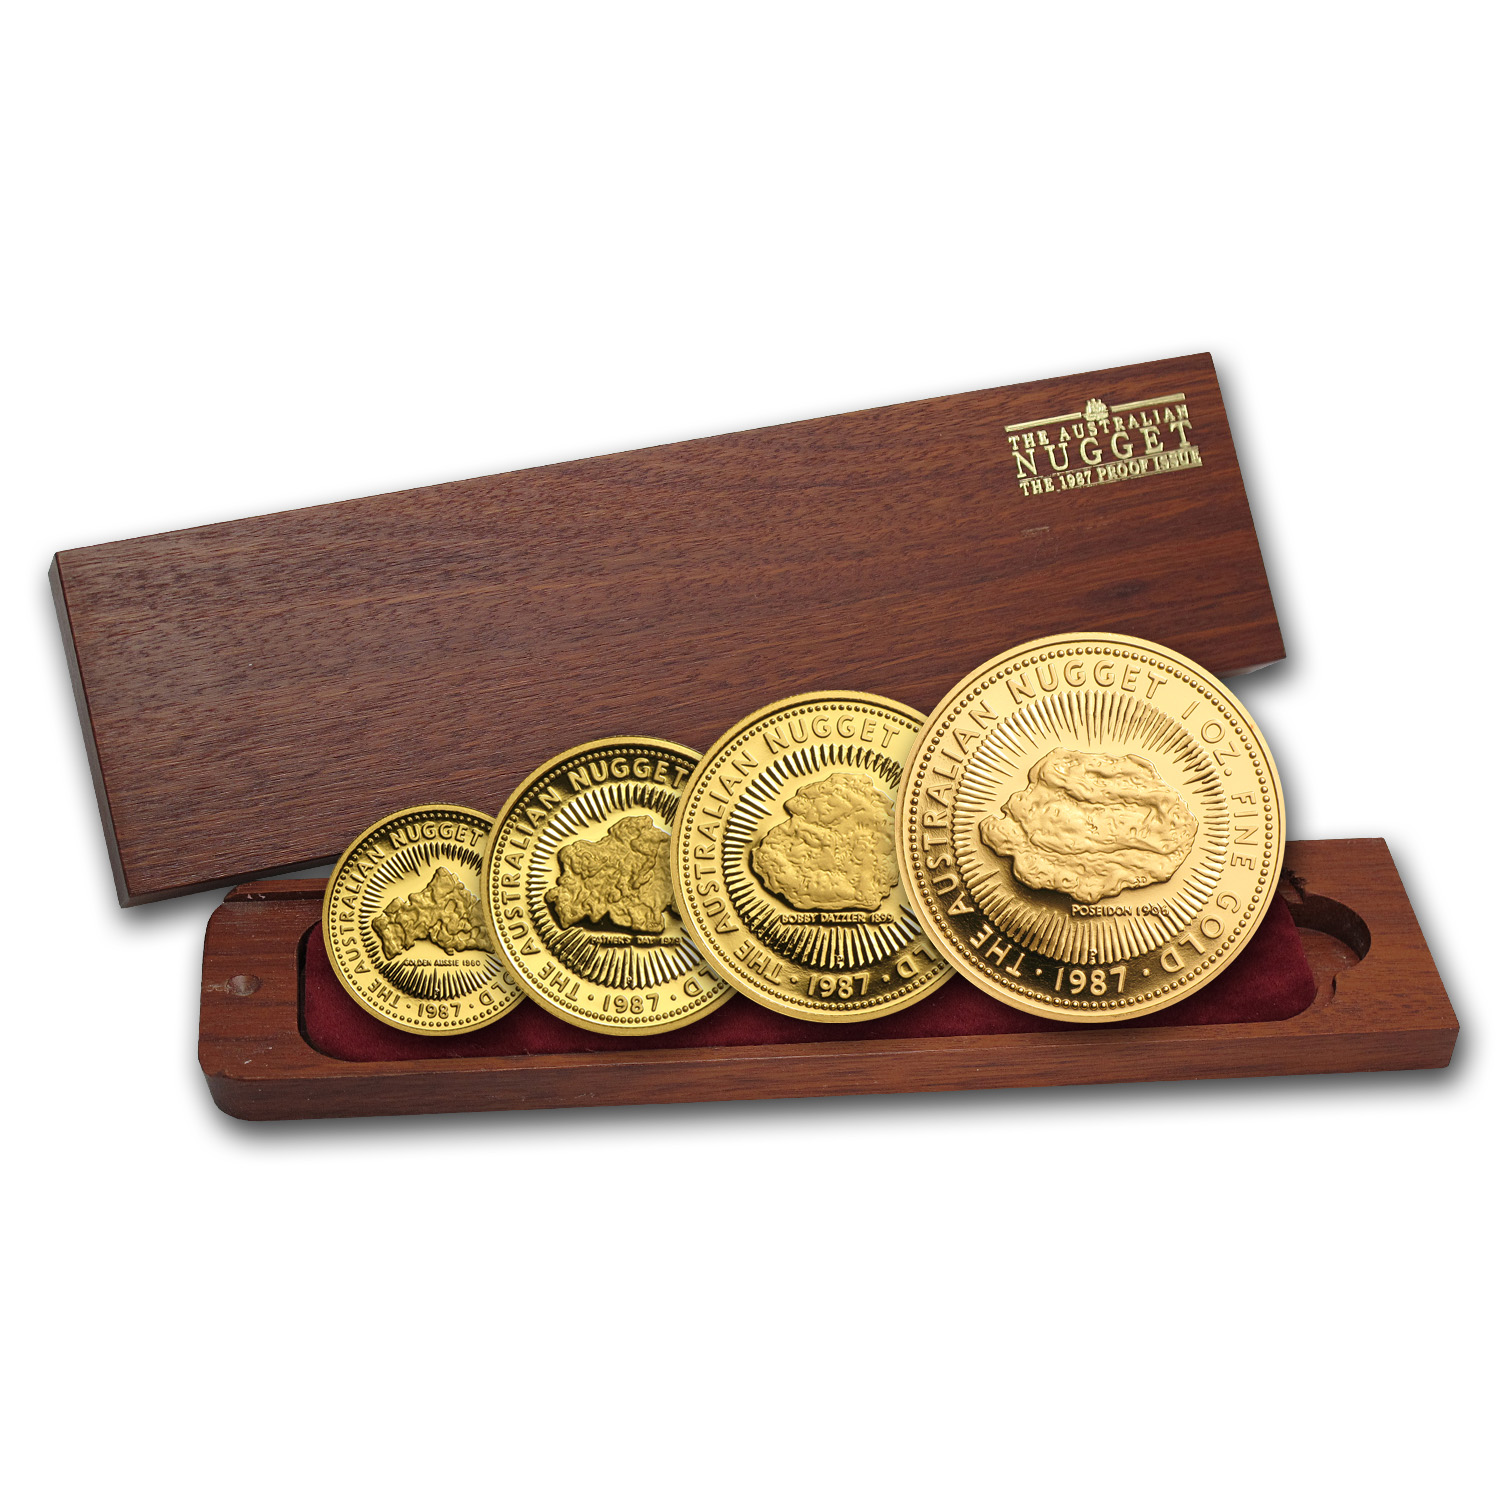 1987 Australia 4-Coin Gold Nugget Proof Set (No COA)